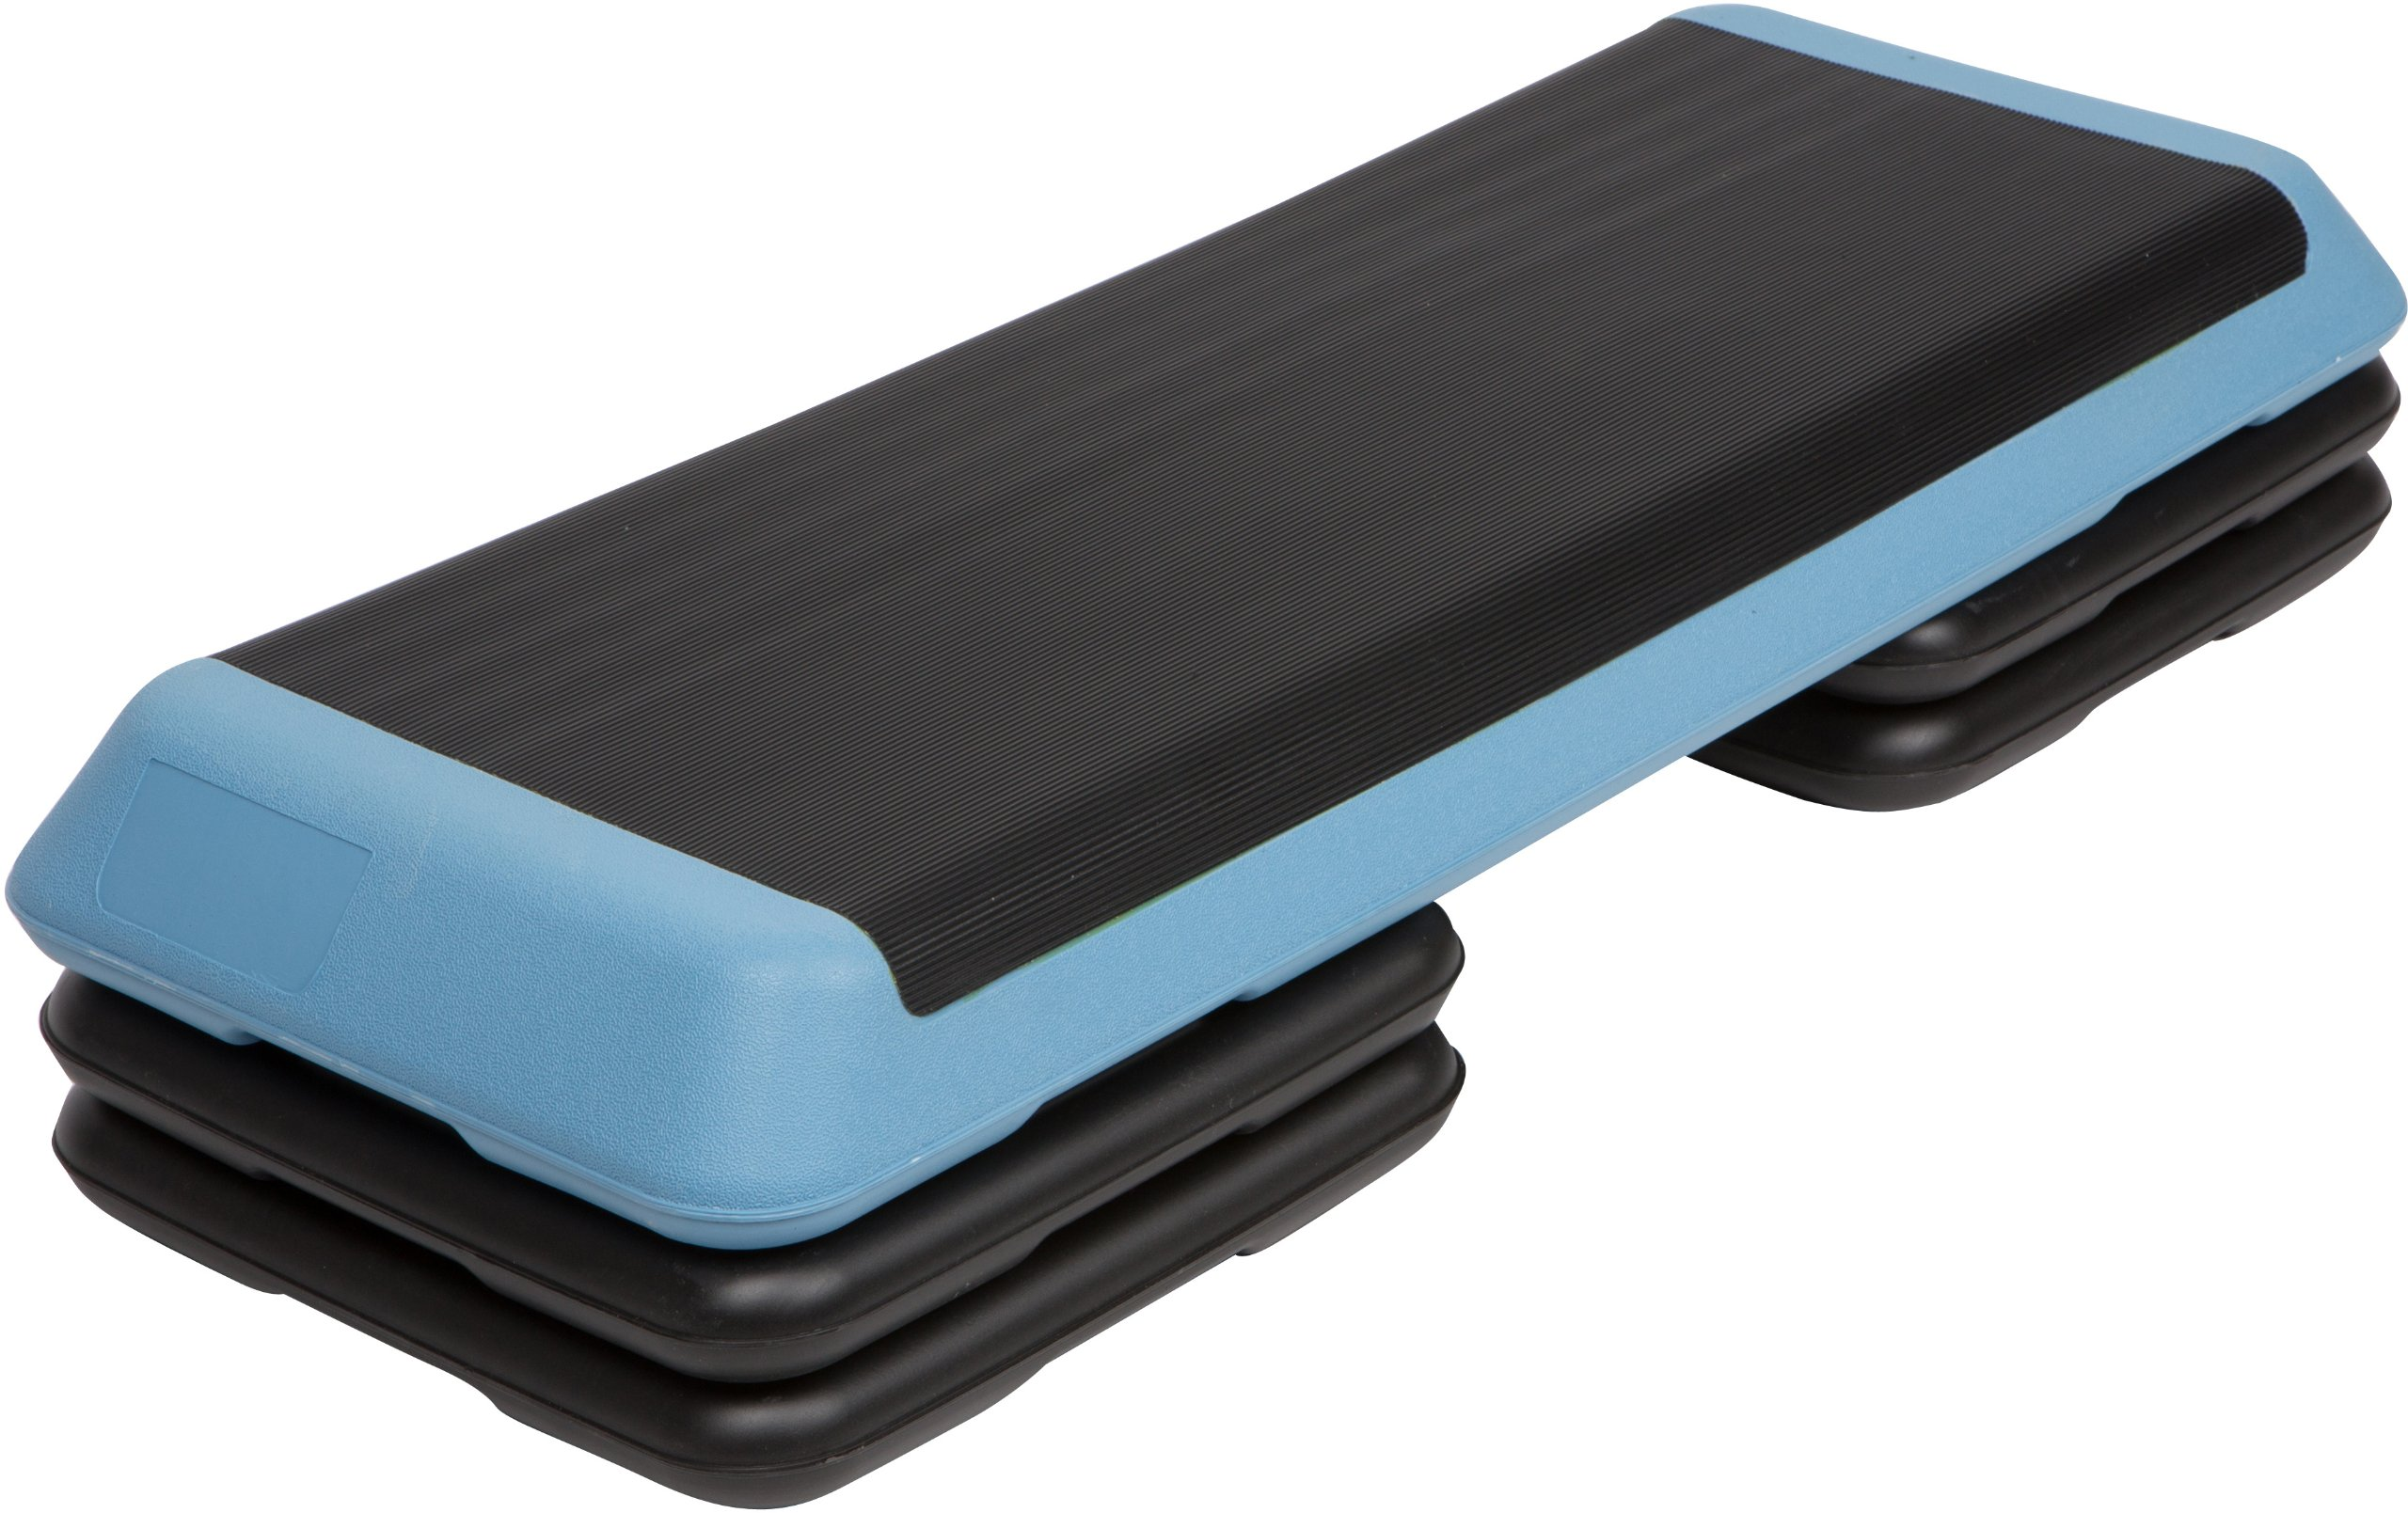 Trademark Innovations High Step Work Out Training Device, Short Risers with One Long